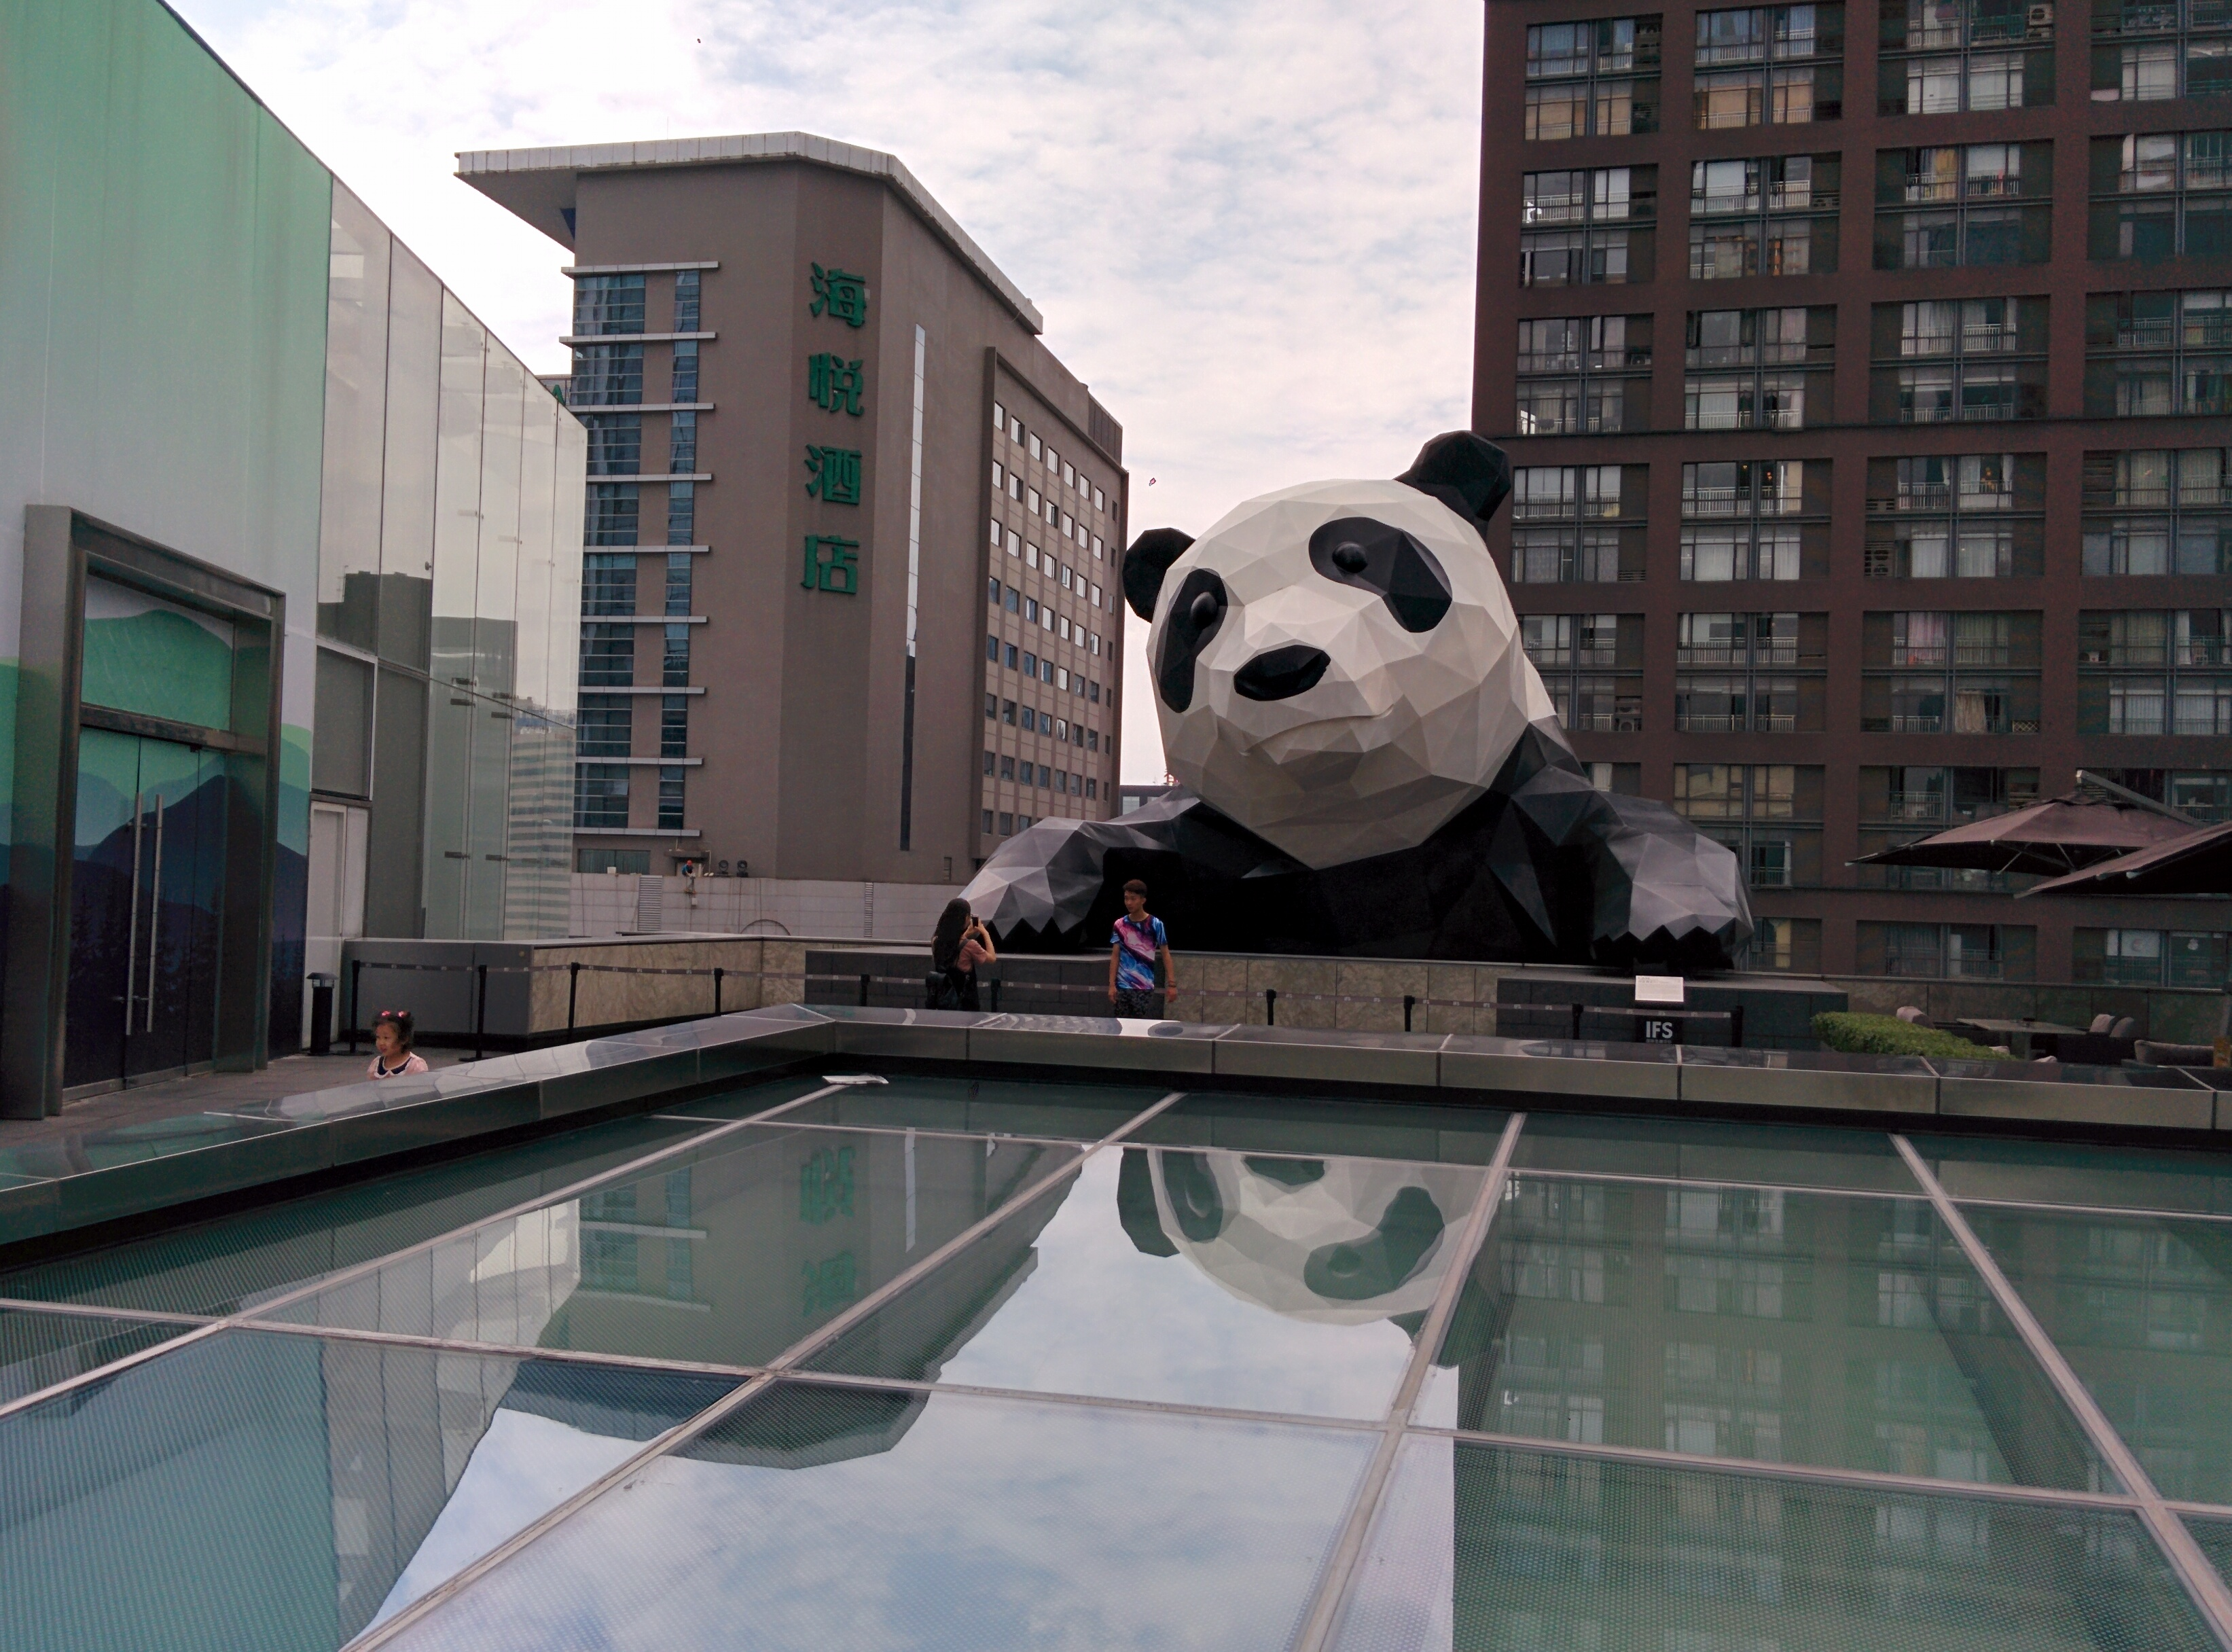 This panda sculpture, titled I AM HERE, adorns the top of the IFS building at Chunxi Road, Chengdu